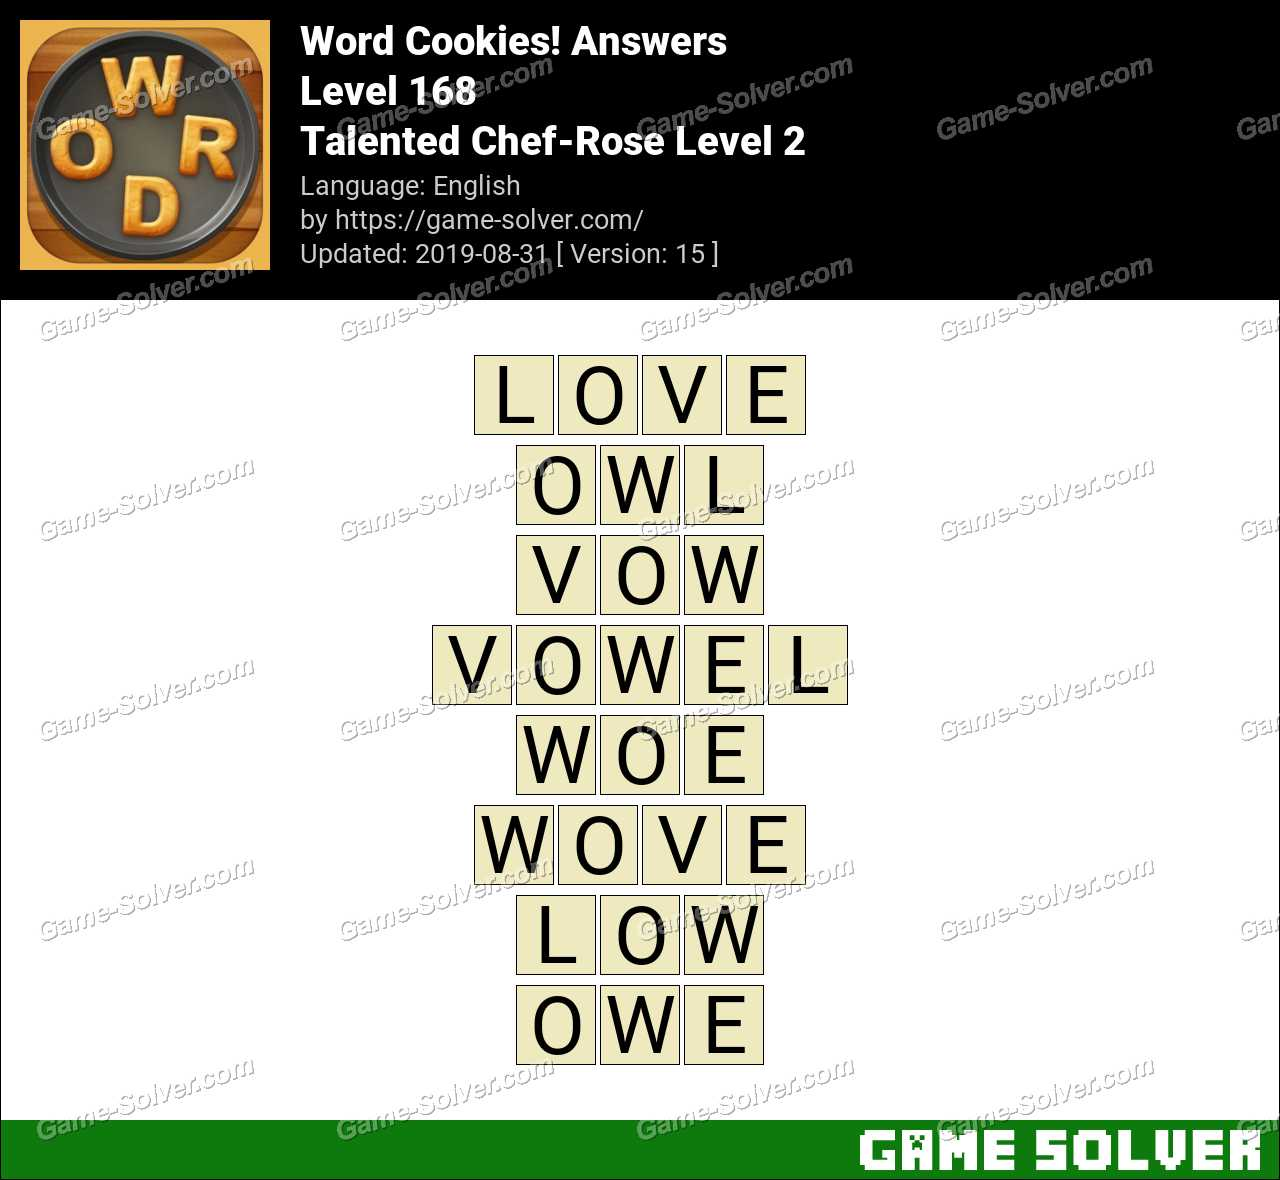 Word Cookies Talented Chef-Rose Level 2 Answers